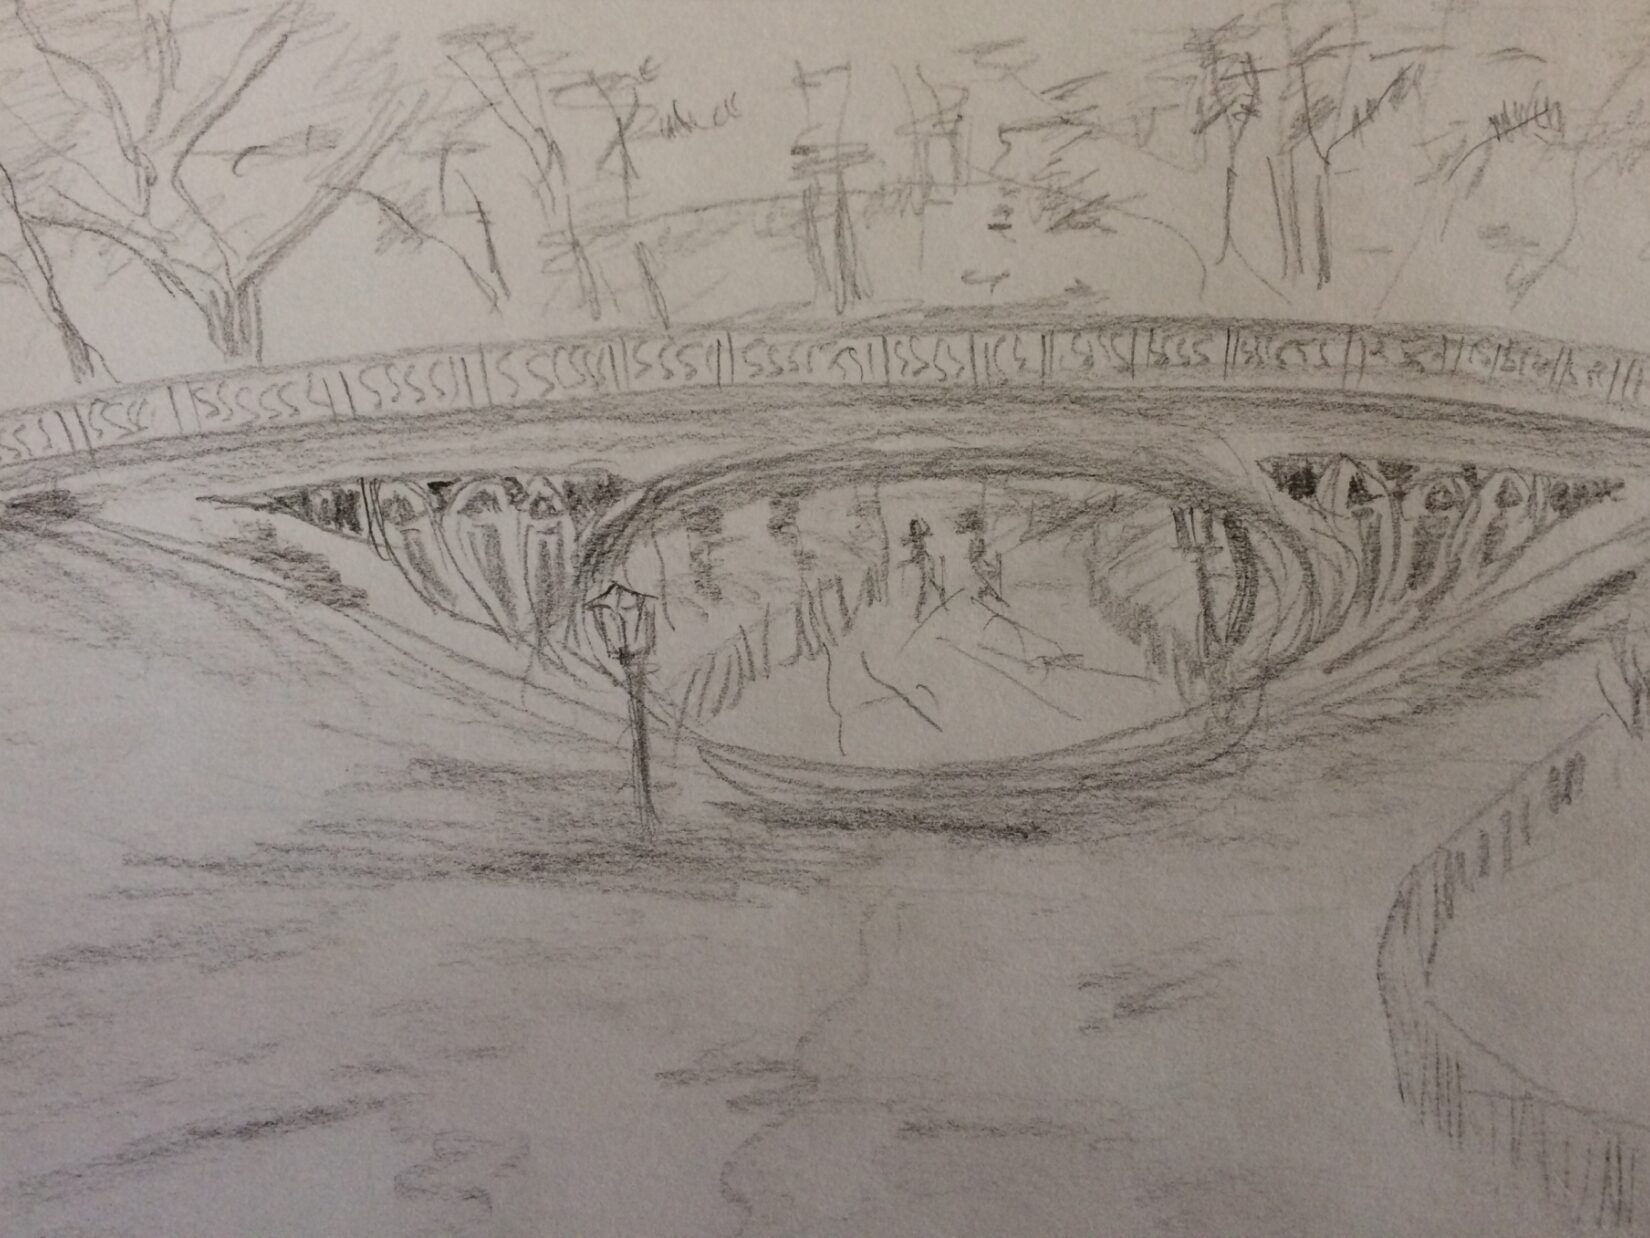 Drawing of the Gothic Bridge